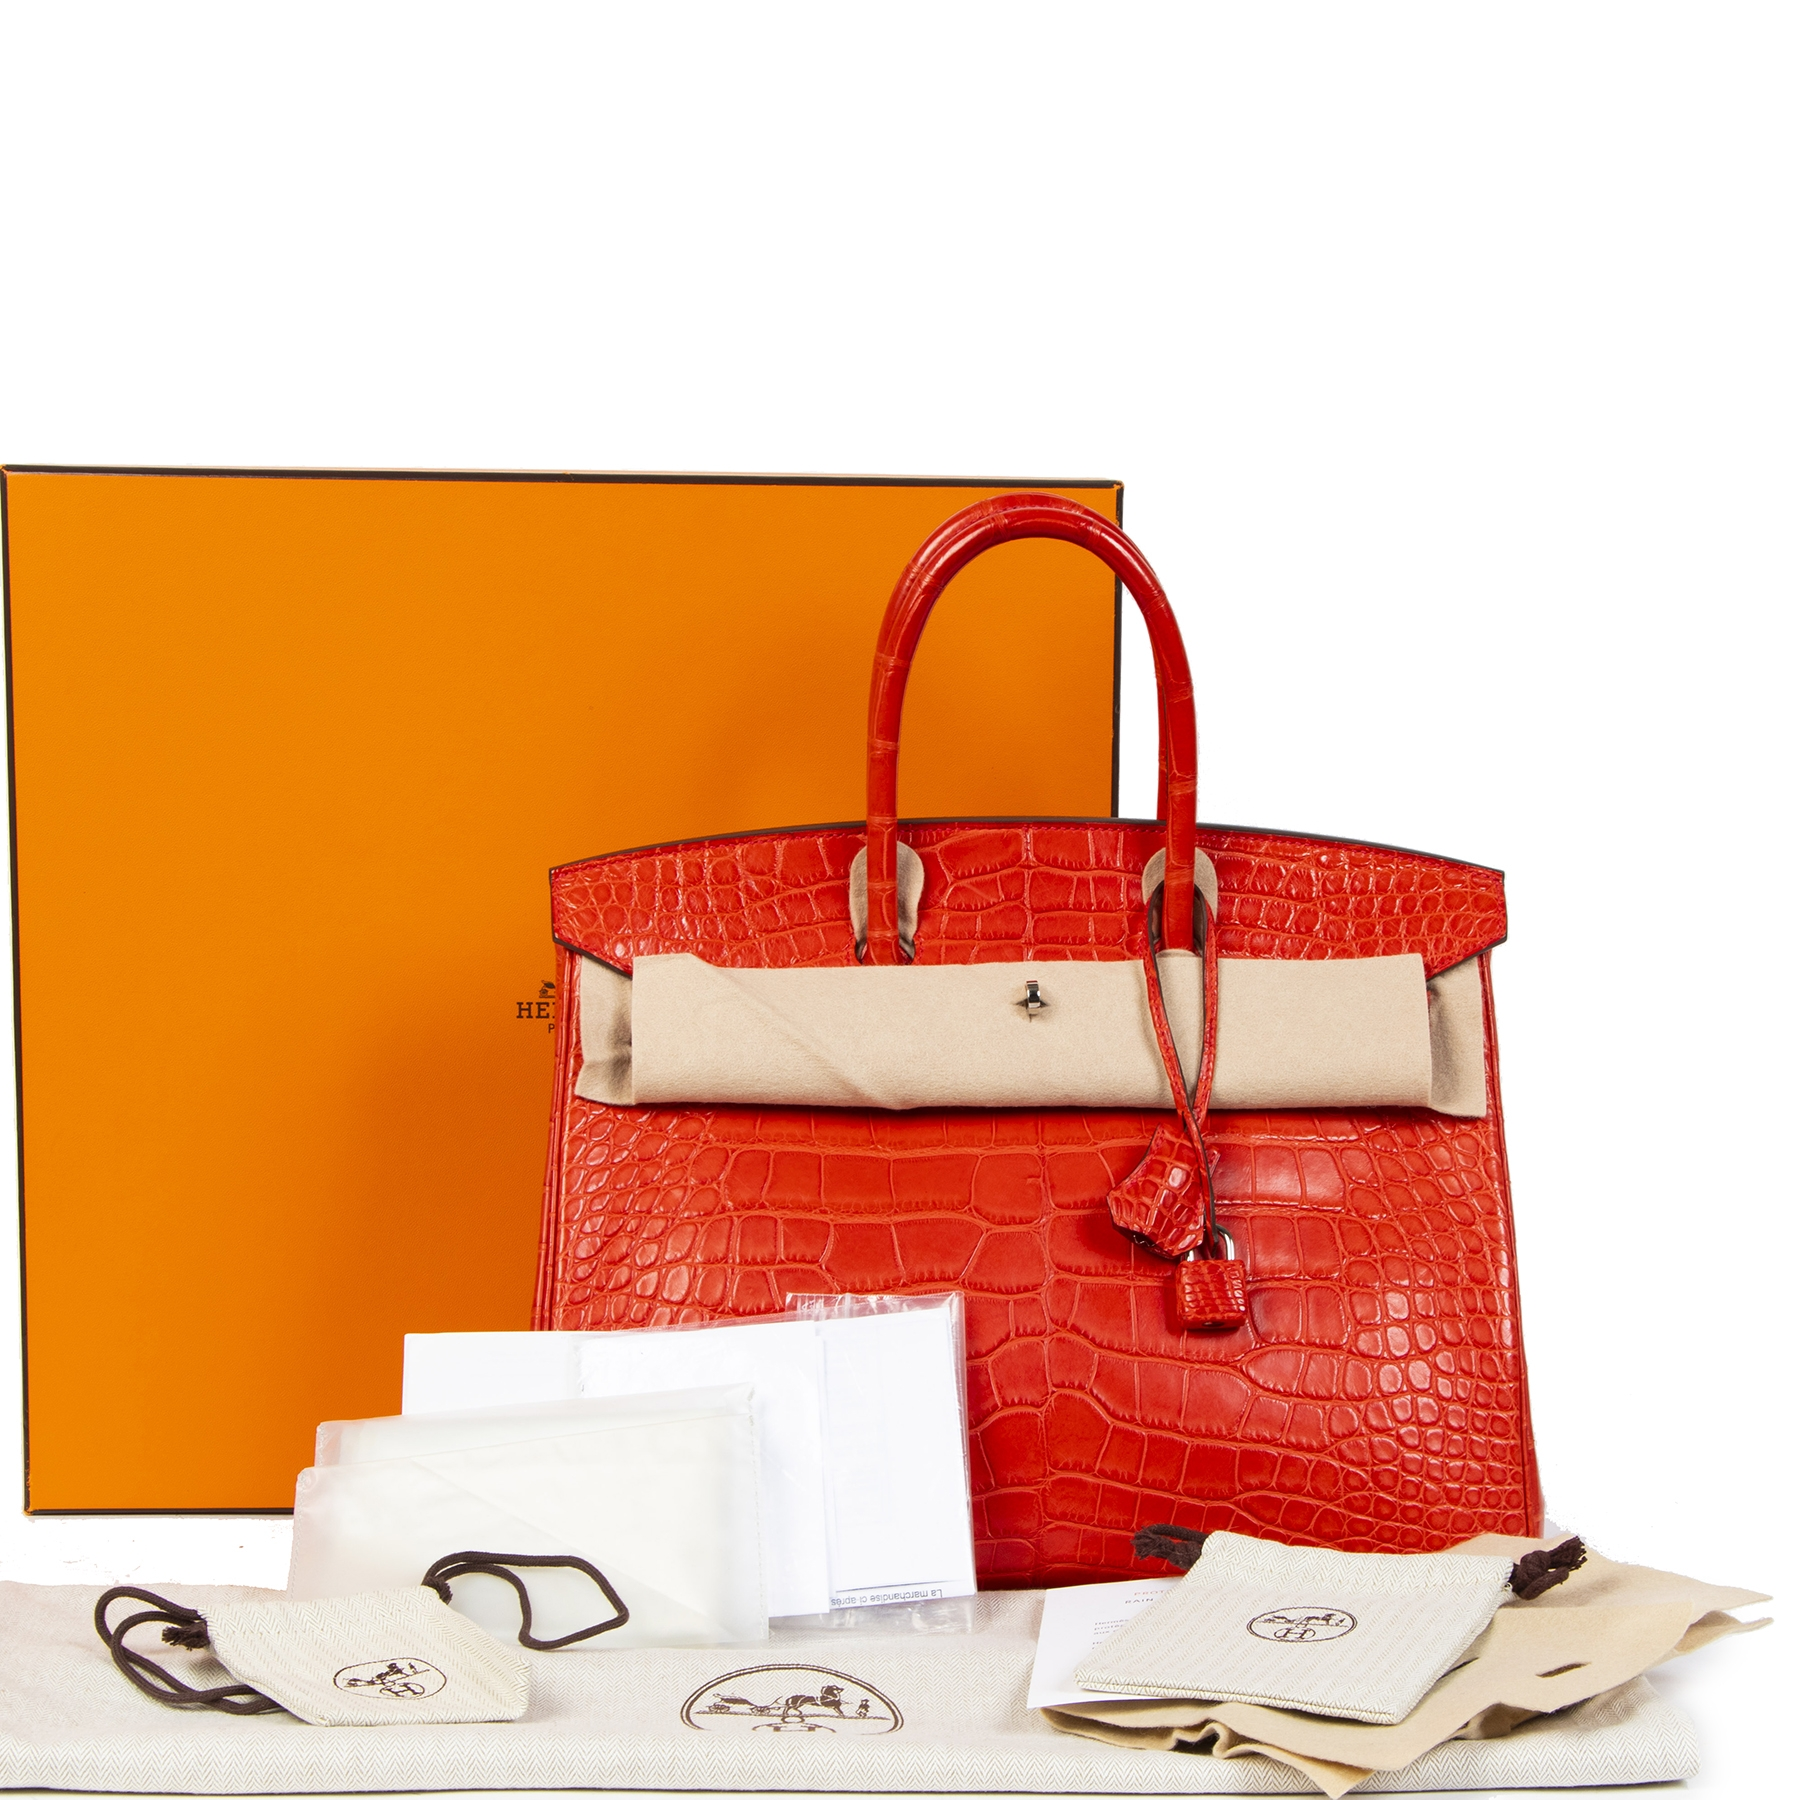 limited collectors item Hermès Birkin 35 Matt Alligator Geranium PHW geranium PHW full set invoice included